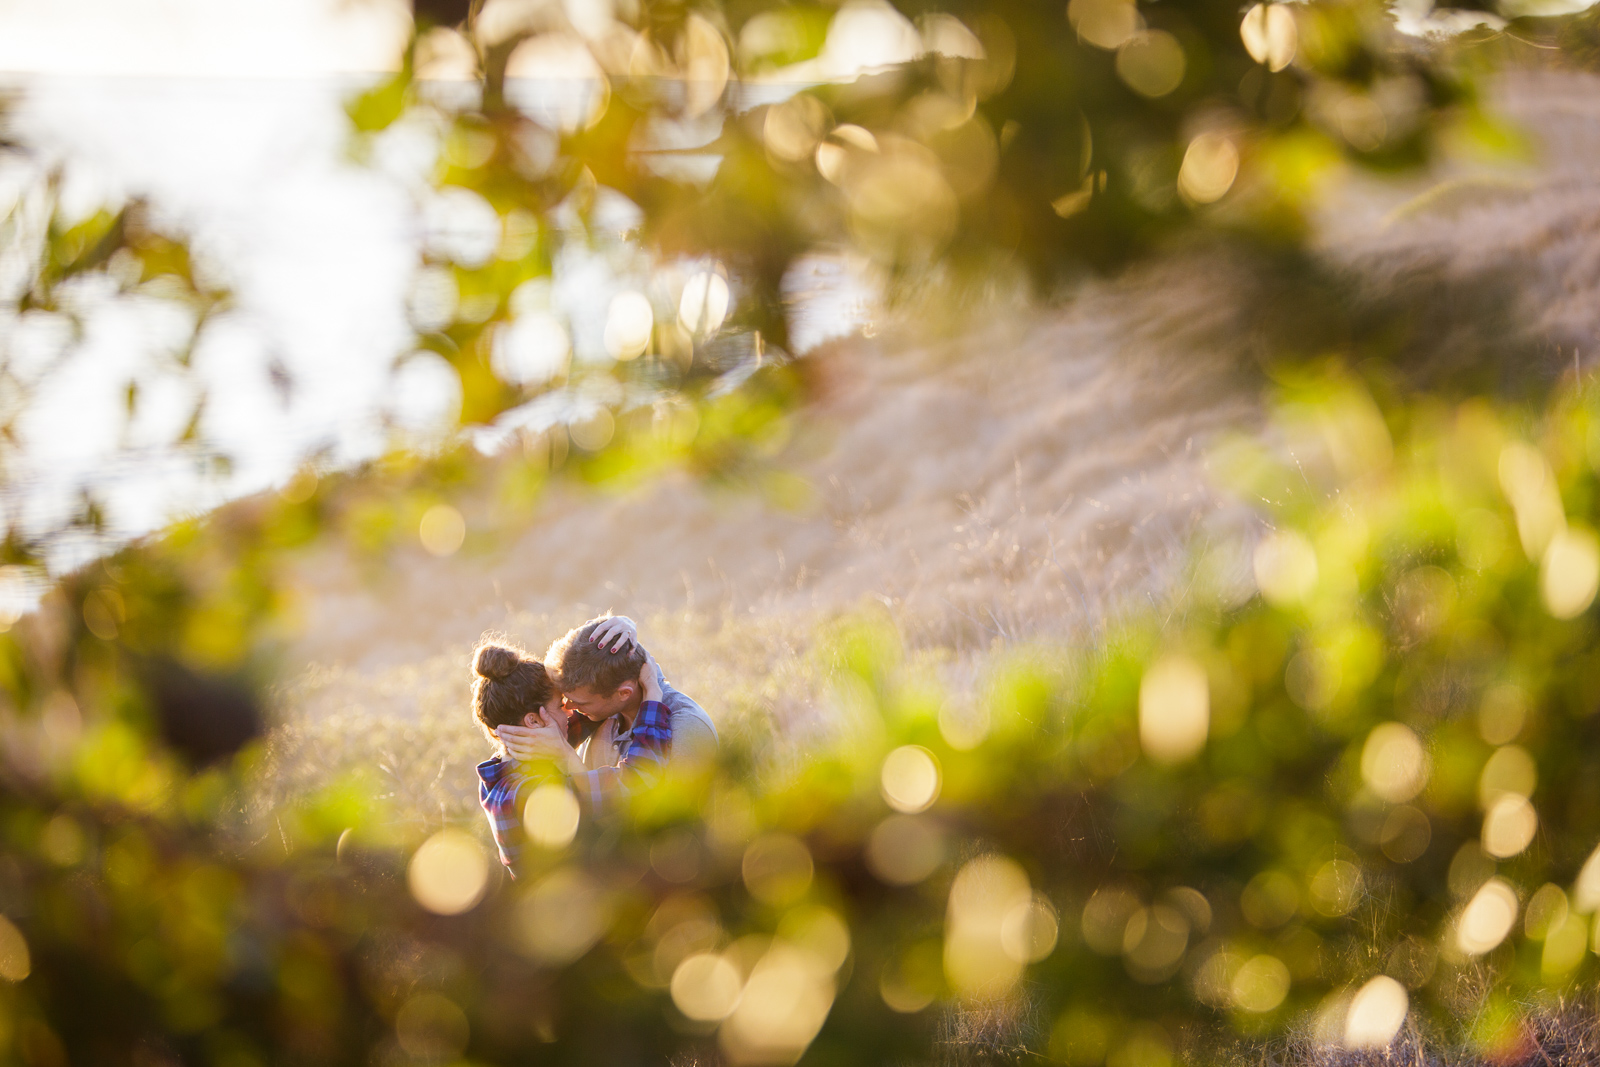 Passionate California coast engagement at sunset on the Gaviota Bluffs